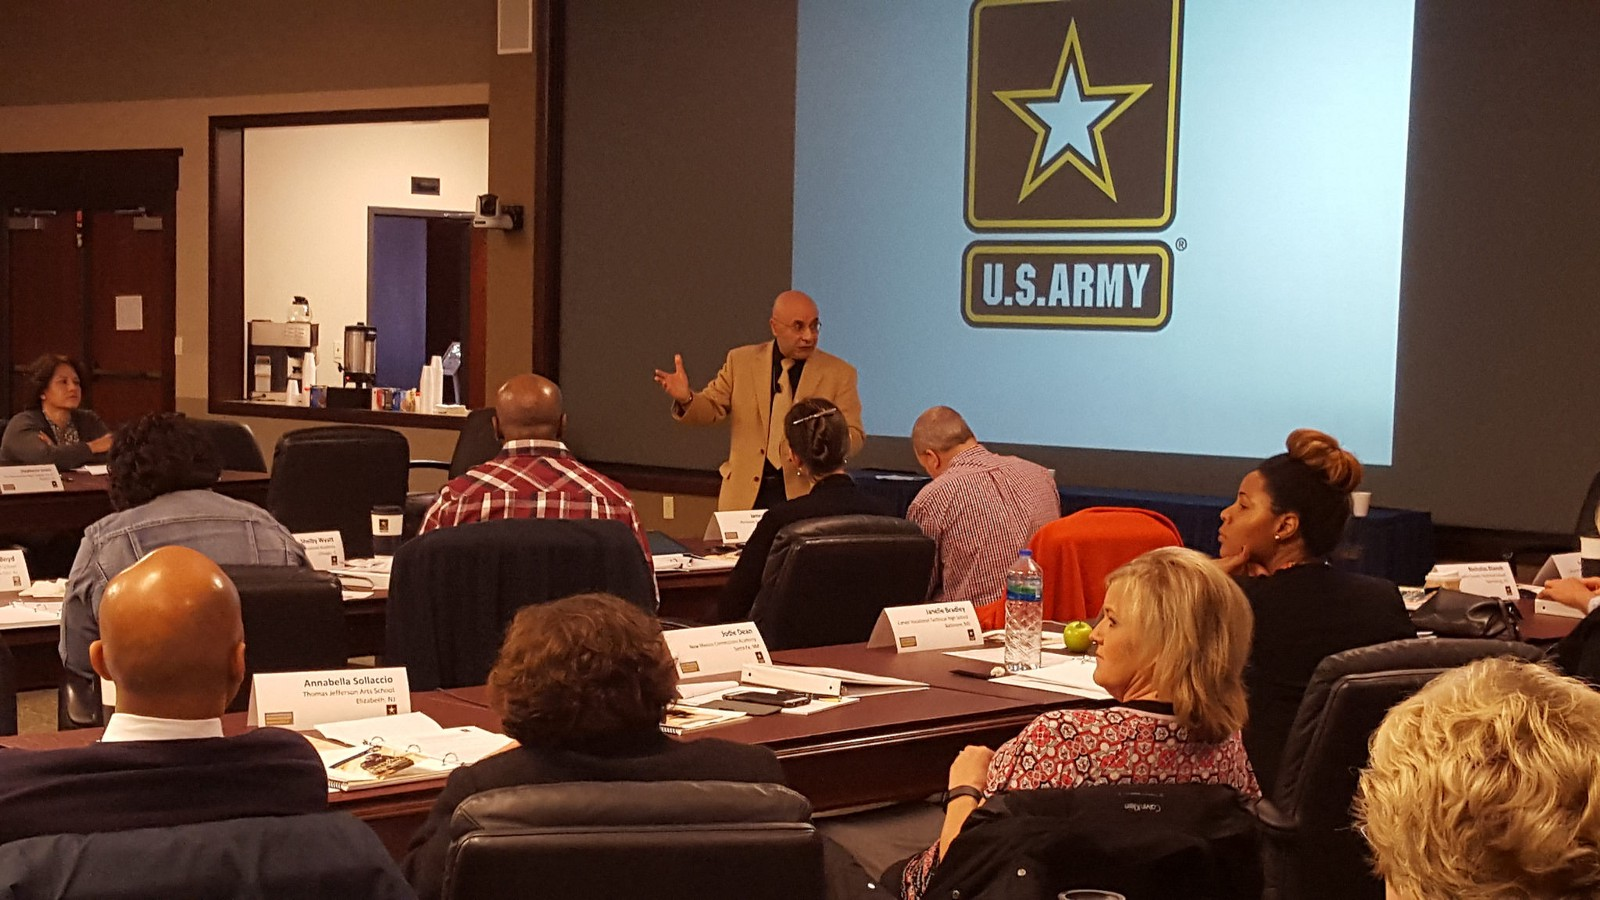 Dr. Mahir J. Ibrahimova, Program Manager at the US Army Combined Arms Center's Culture, Regional Expertise and Language Management Office (CRELMO), leads a session on how to be a culturally aware leader at the 2015 US Army Leadership and Professional Development Symposium